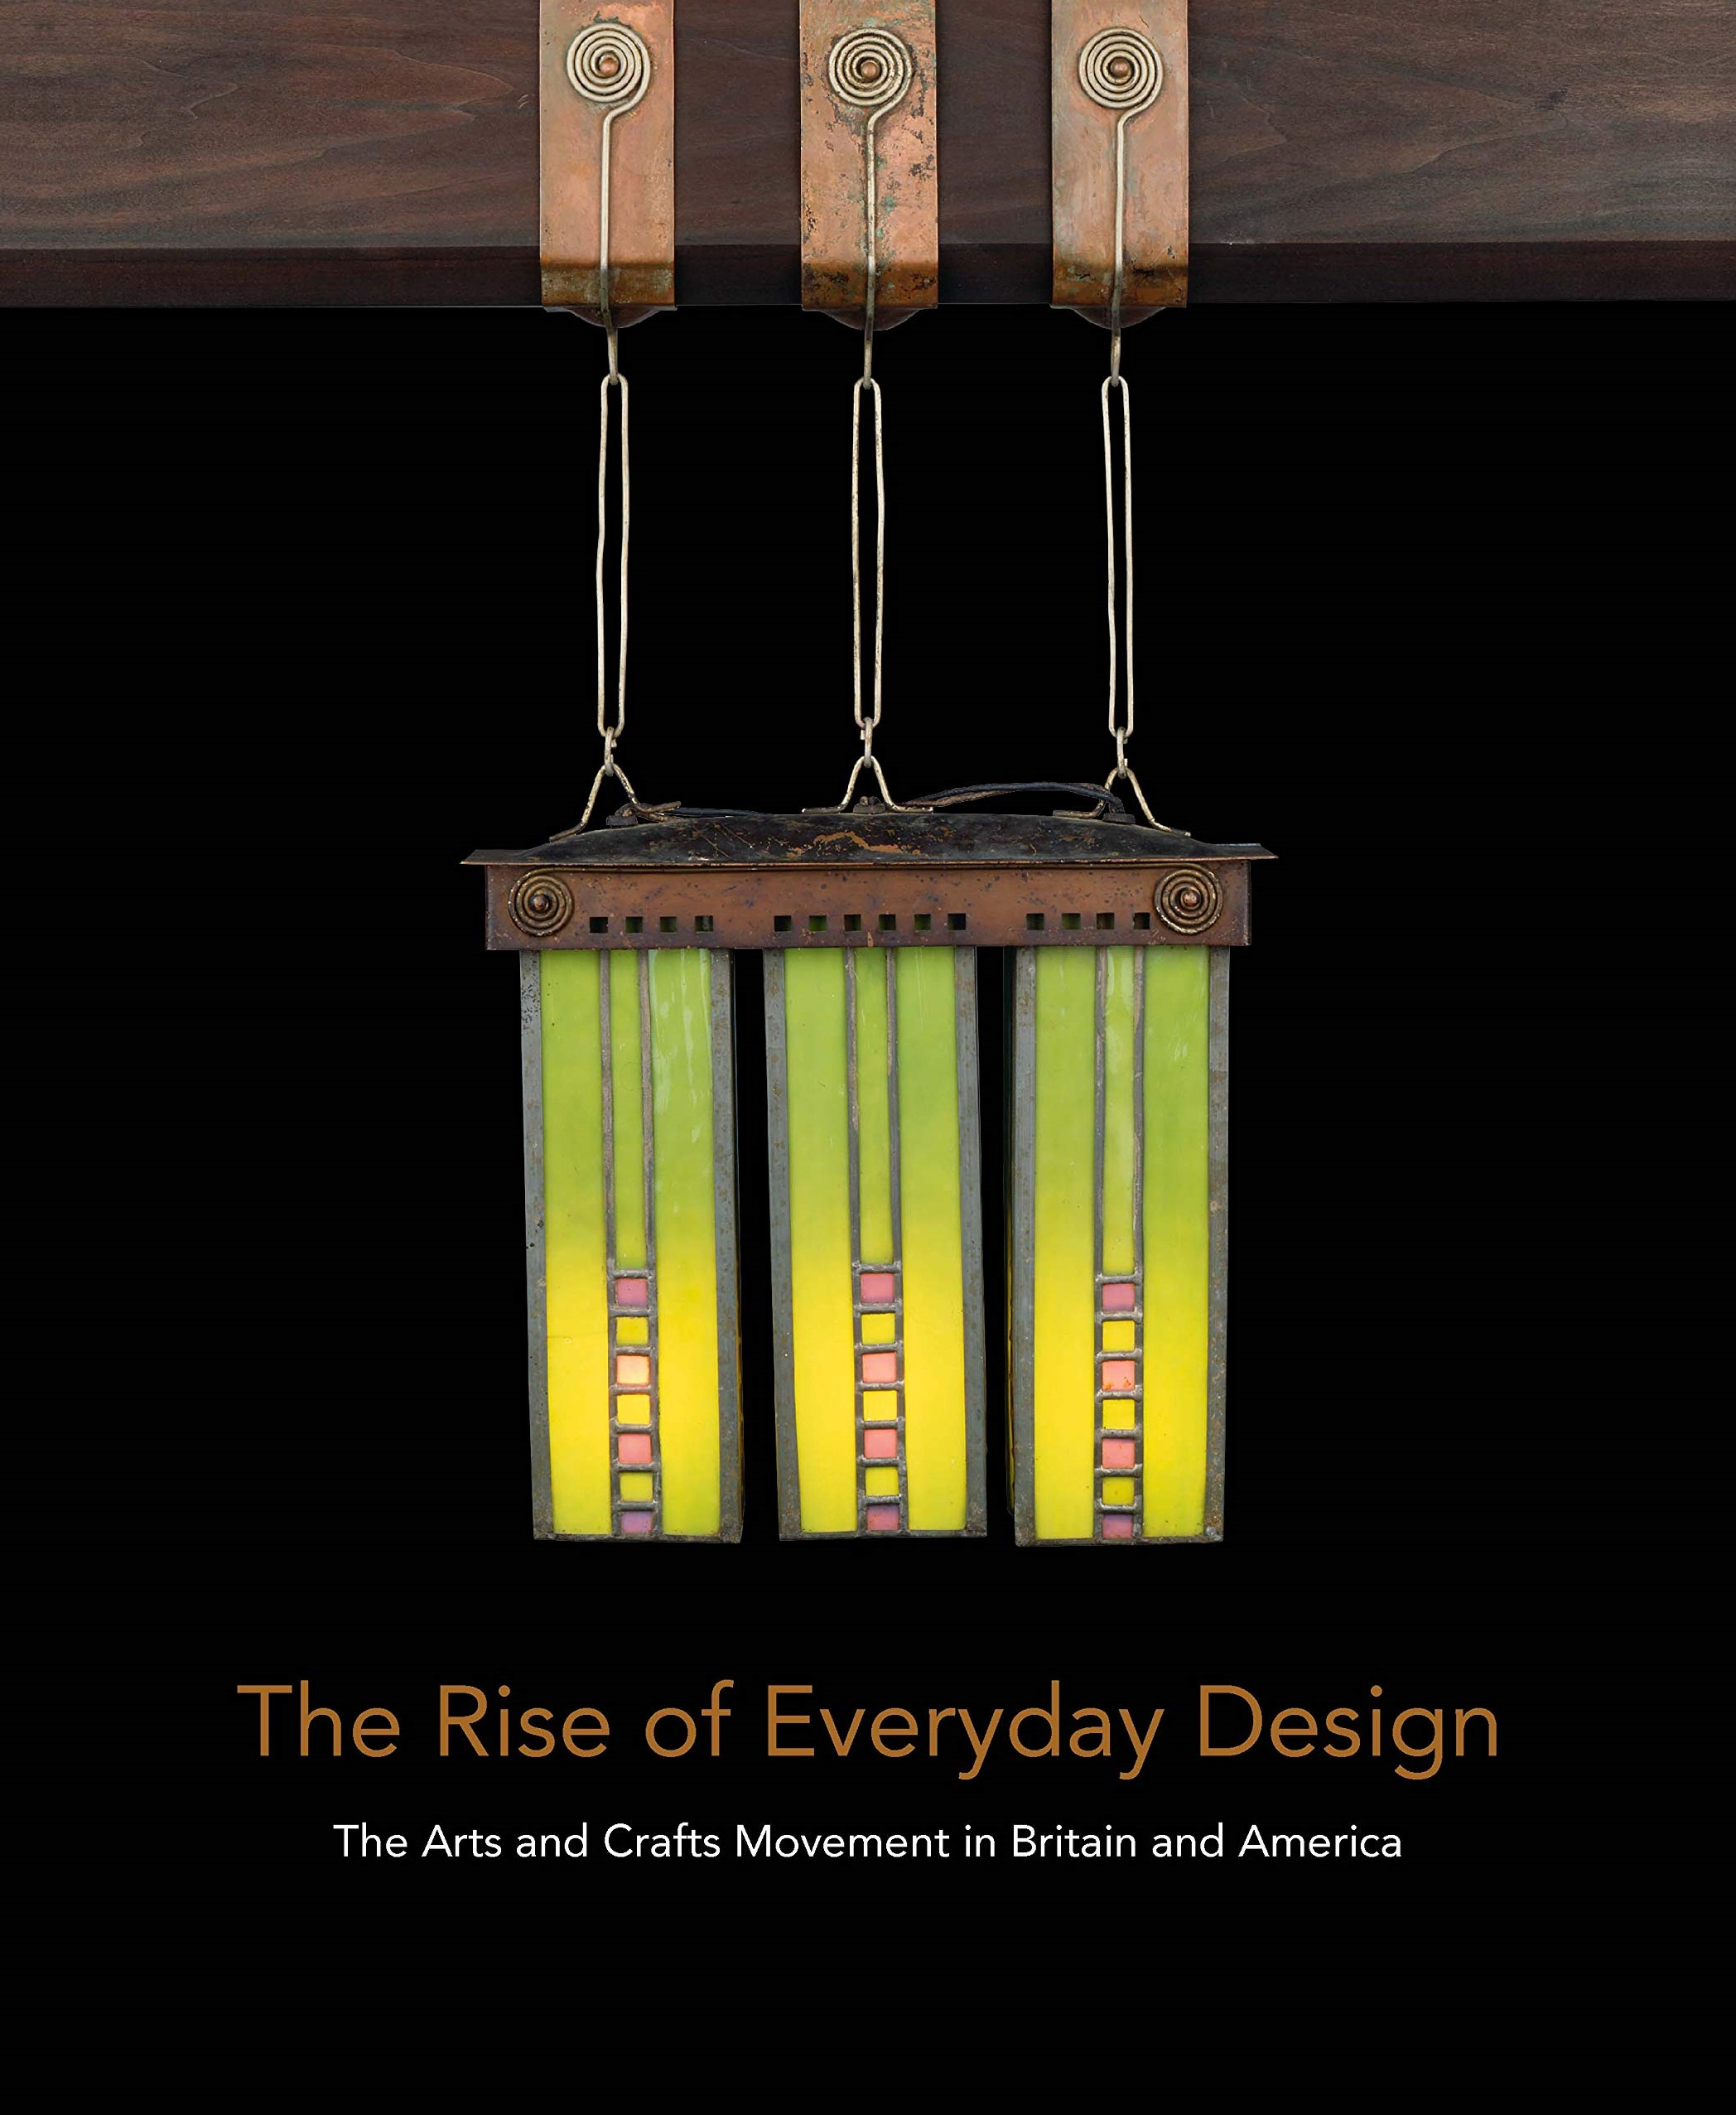 The Rise of Everyday Design The Arts and Crafts Movement in Britain and America 2019 Edition